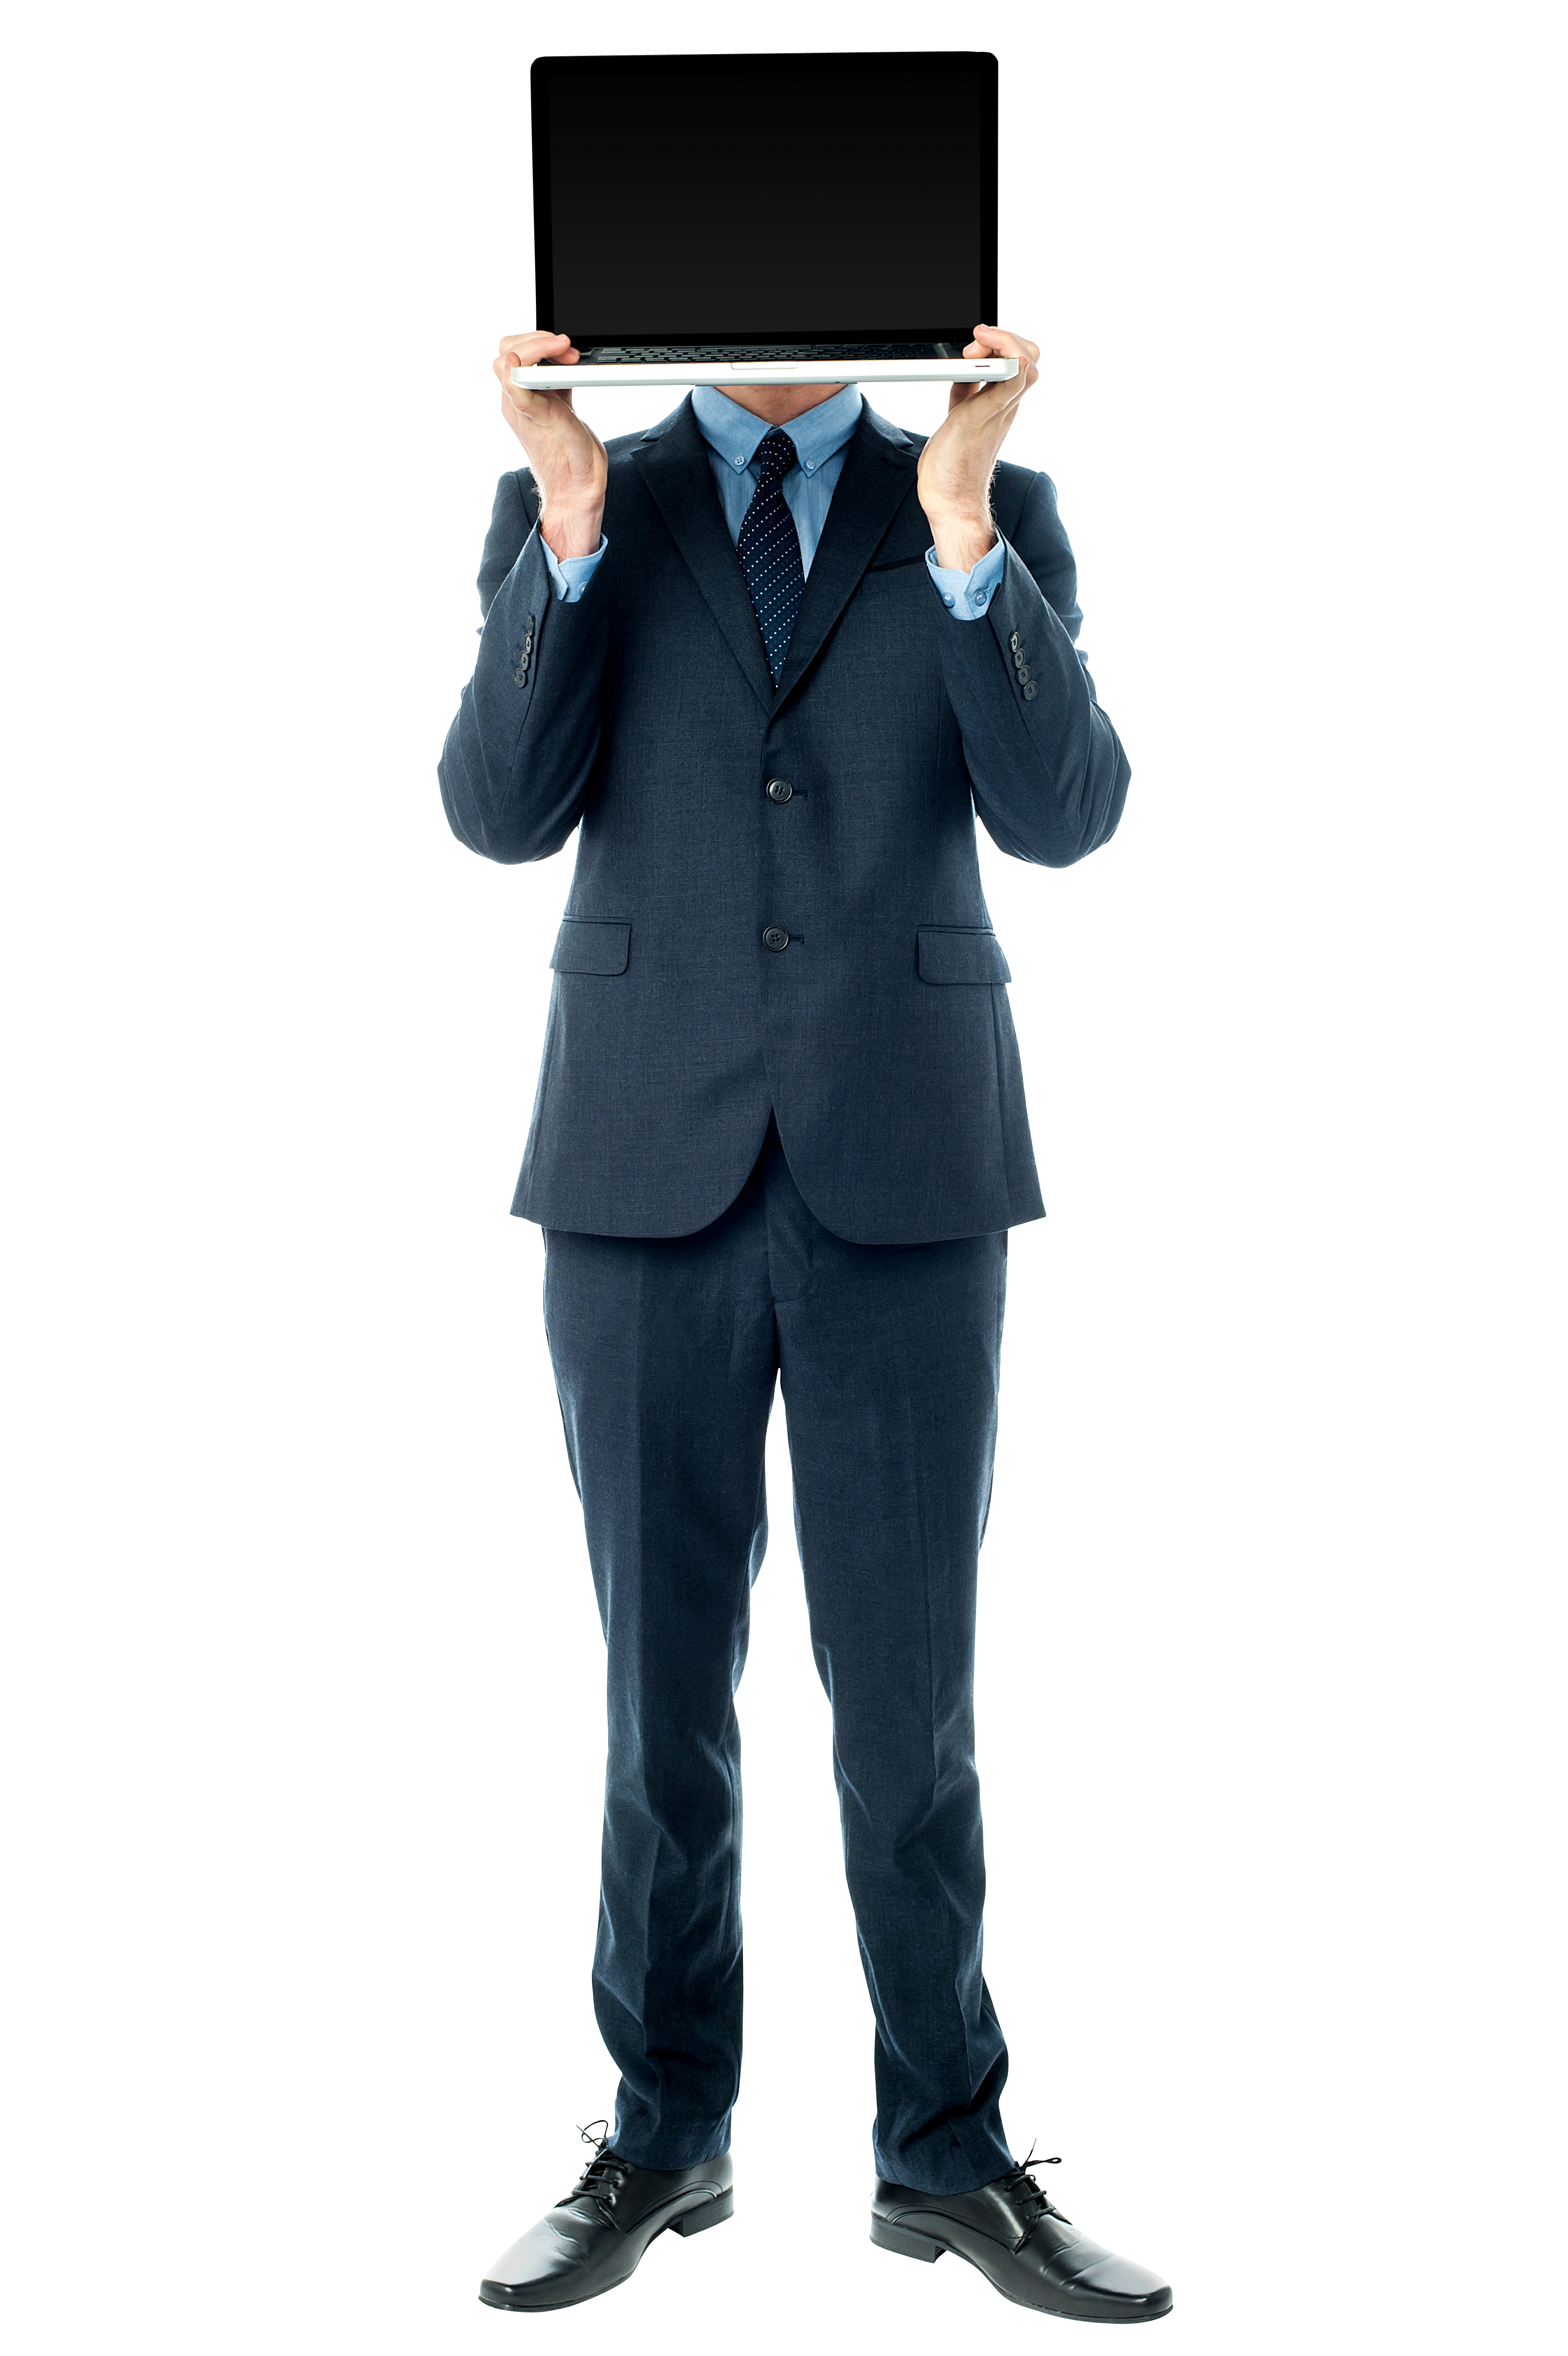 Men clipart laptop. With png image purepng